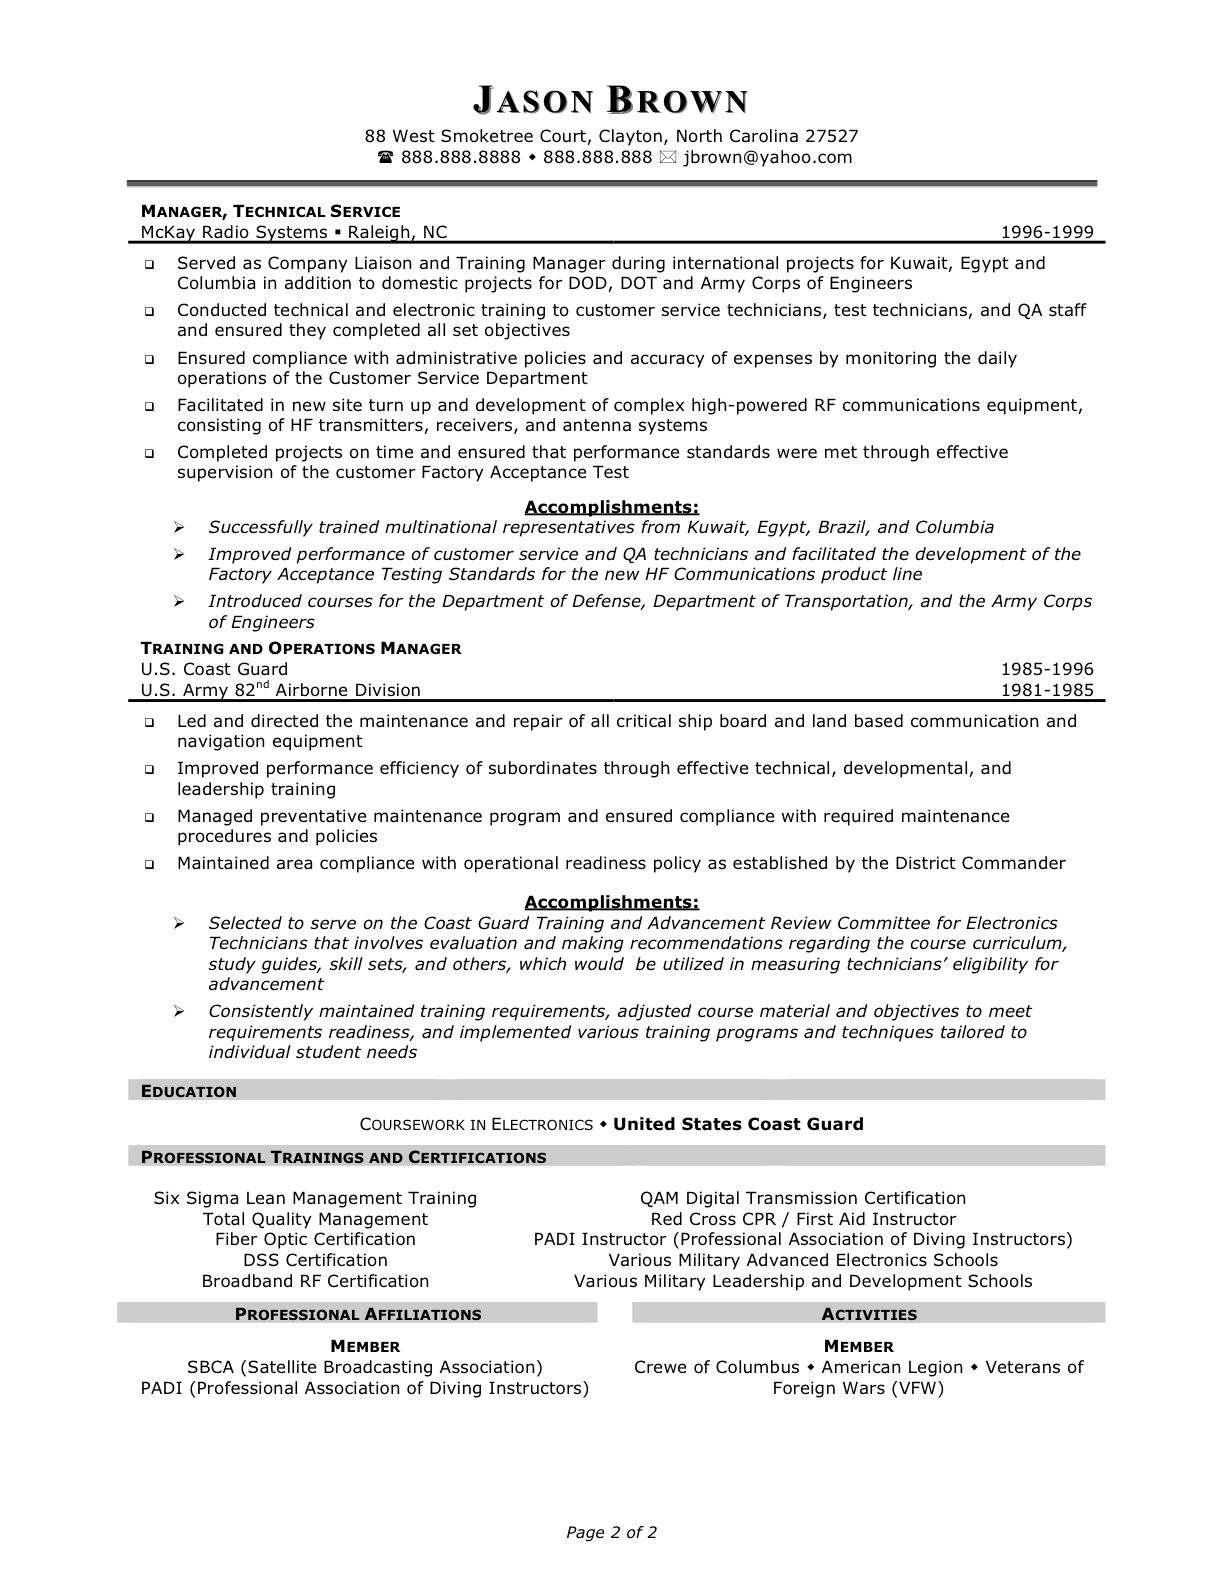 Enterprise Management Trainee Program Resume - http://www ...